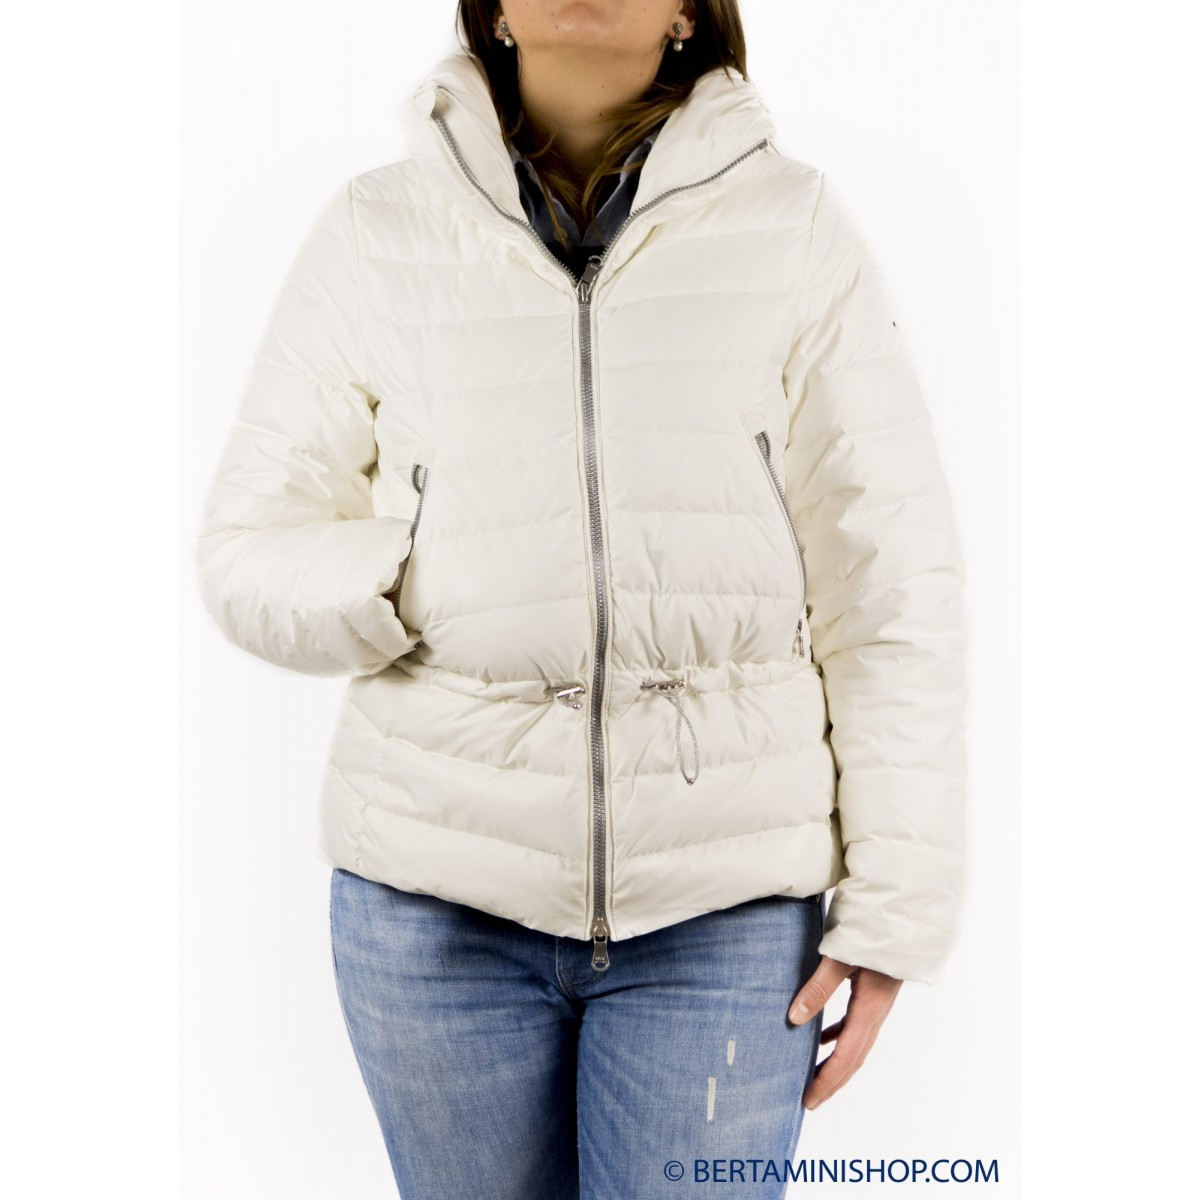 Down Jacket Ralph Lauren Woman - V30Id956Yd210 B1X18 - Avorio